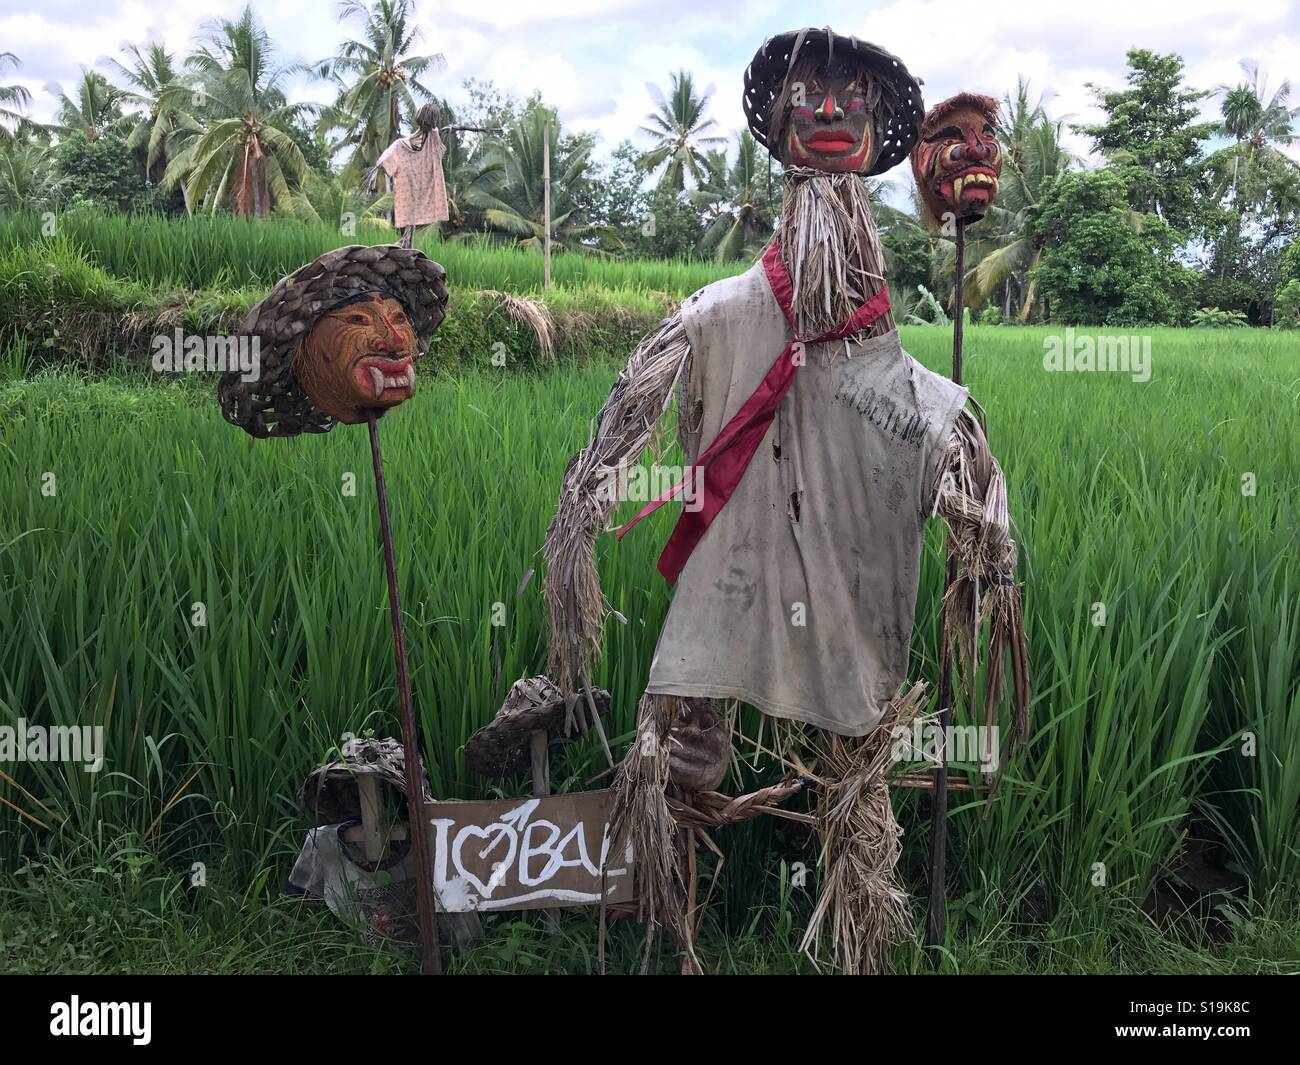 This scarecrow certainly lives up to its name, complete with mounted heads! Structure in the rice fields of Ubud - Stock Image